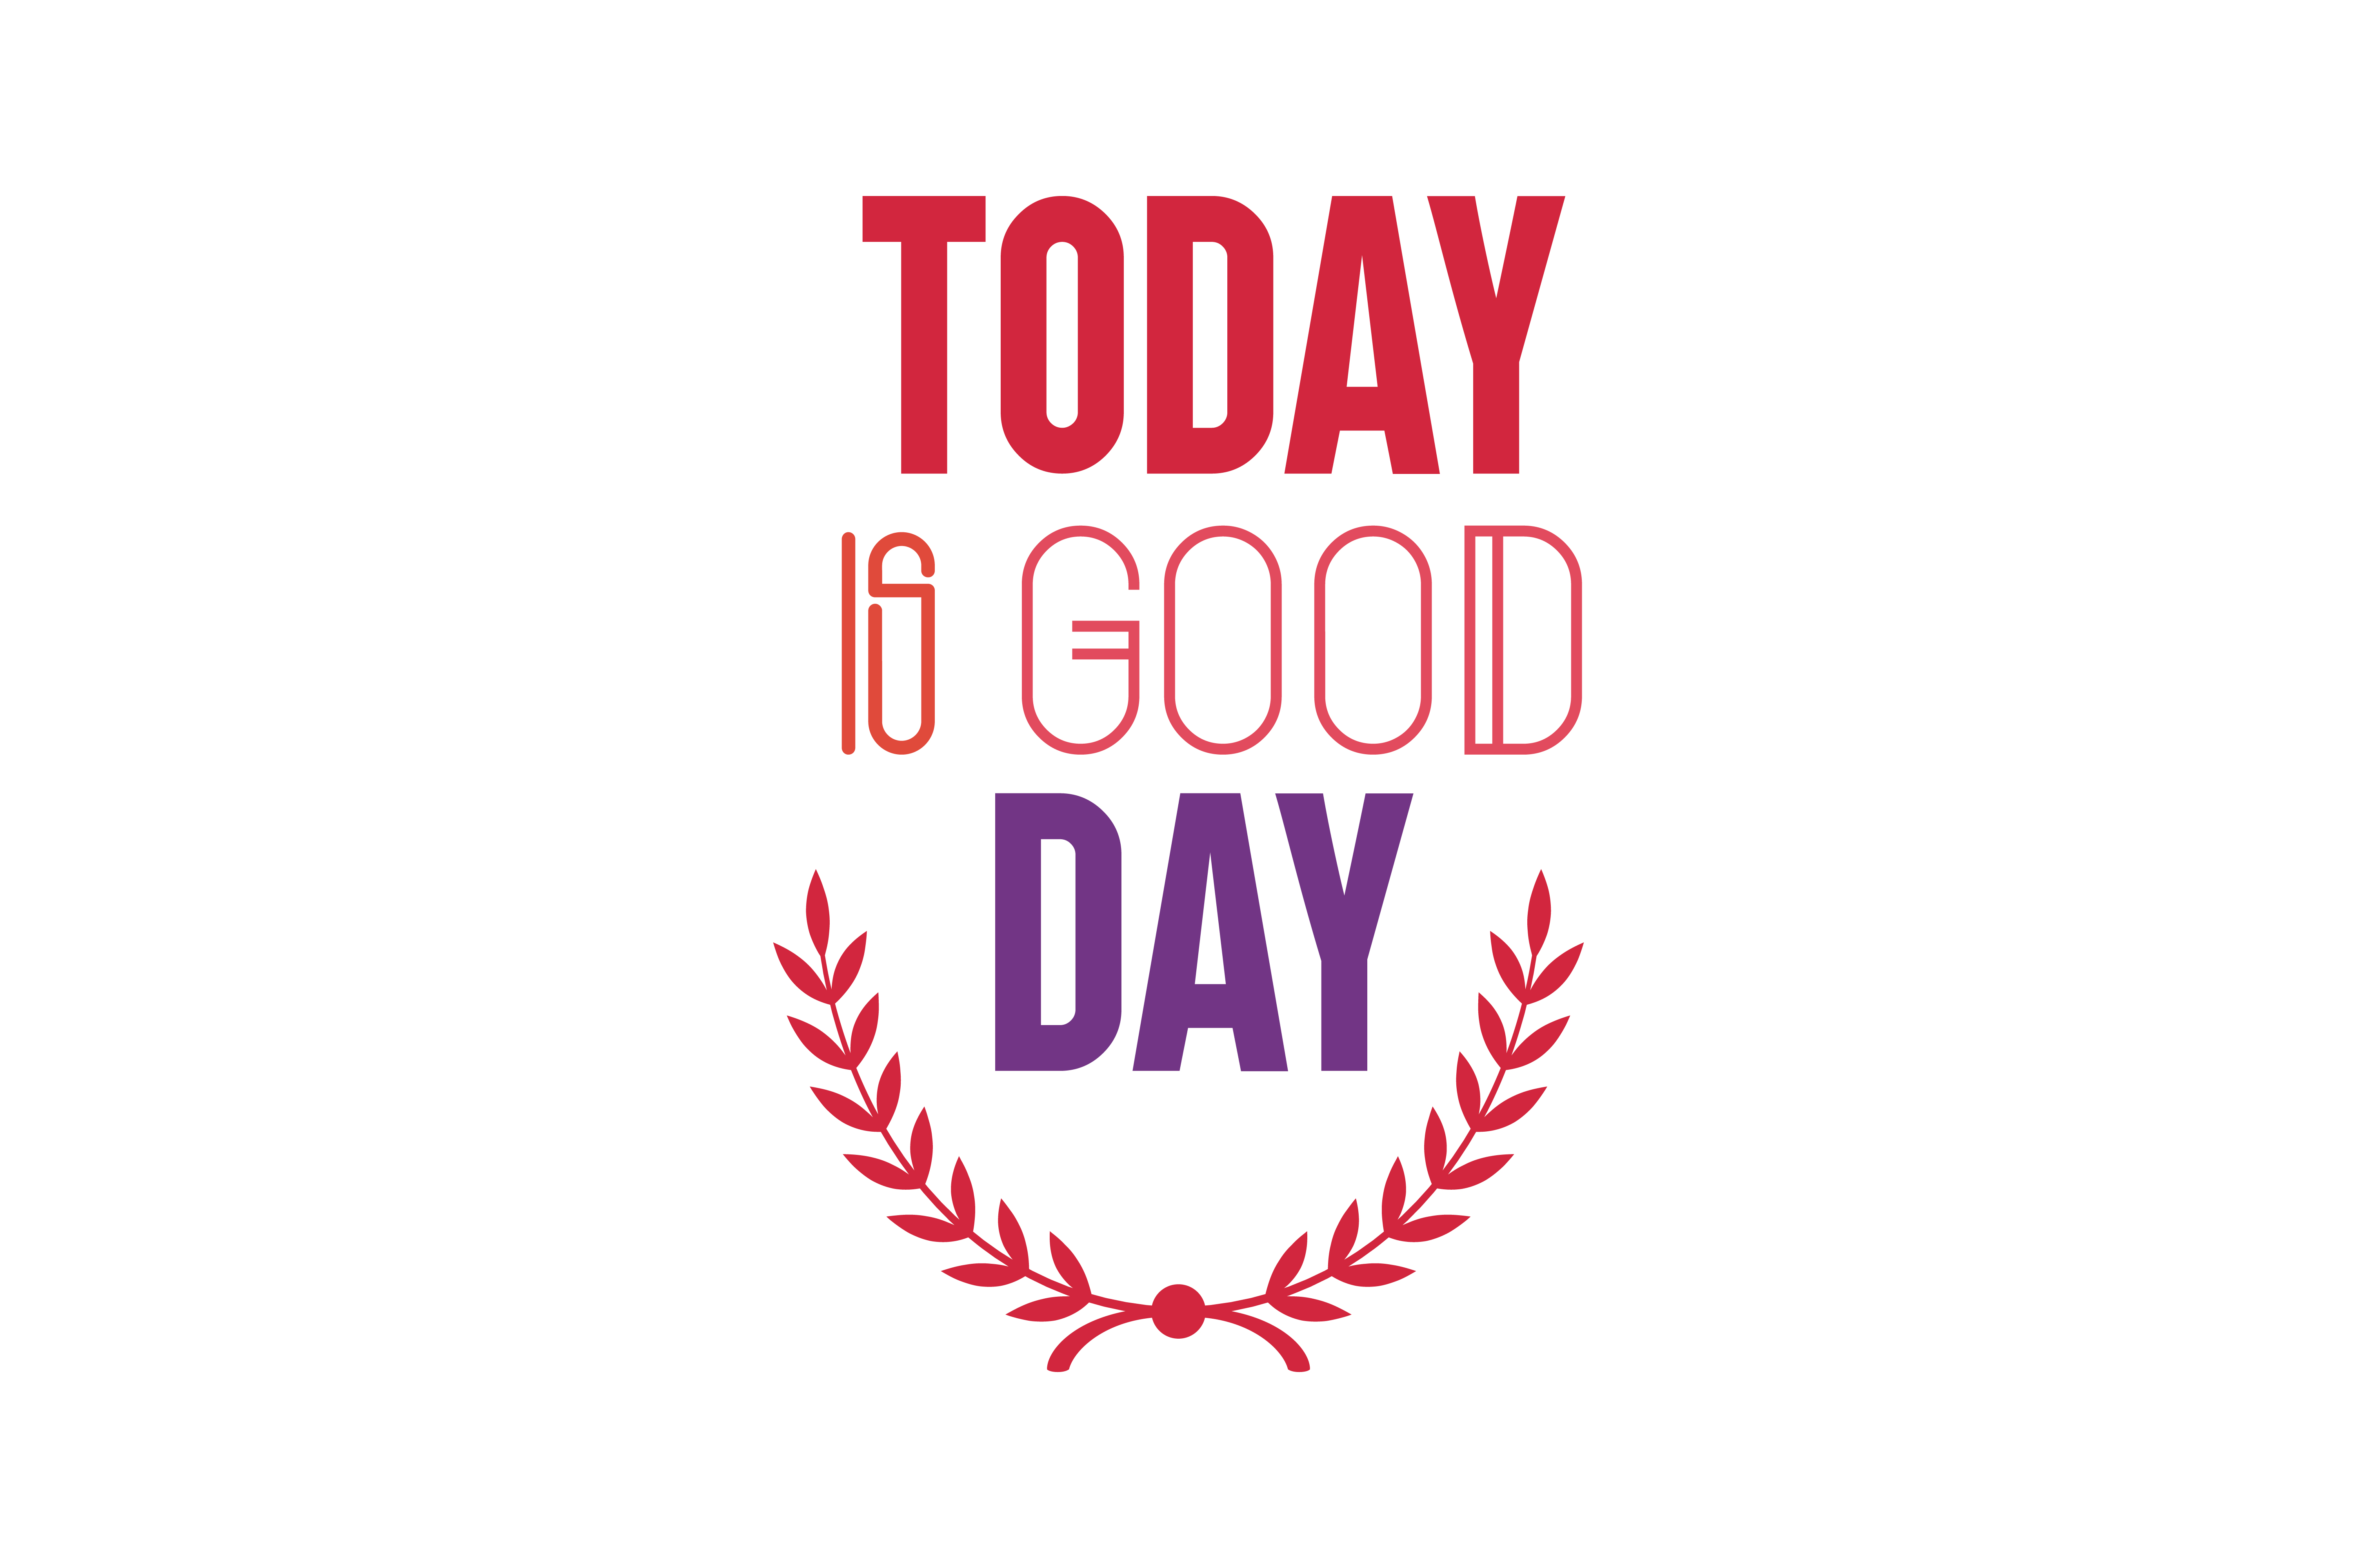 Download Free Today Is Good Day Svg Cut Quote Graphic By Thelucky Creative for Cricut Explore, Silhouette and other cutting machines.